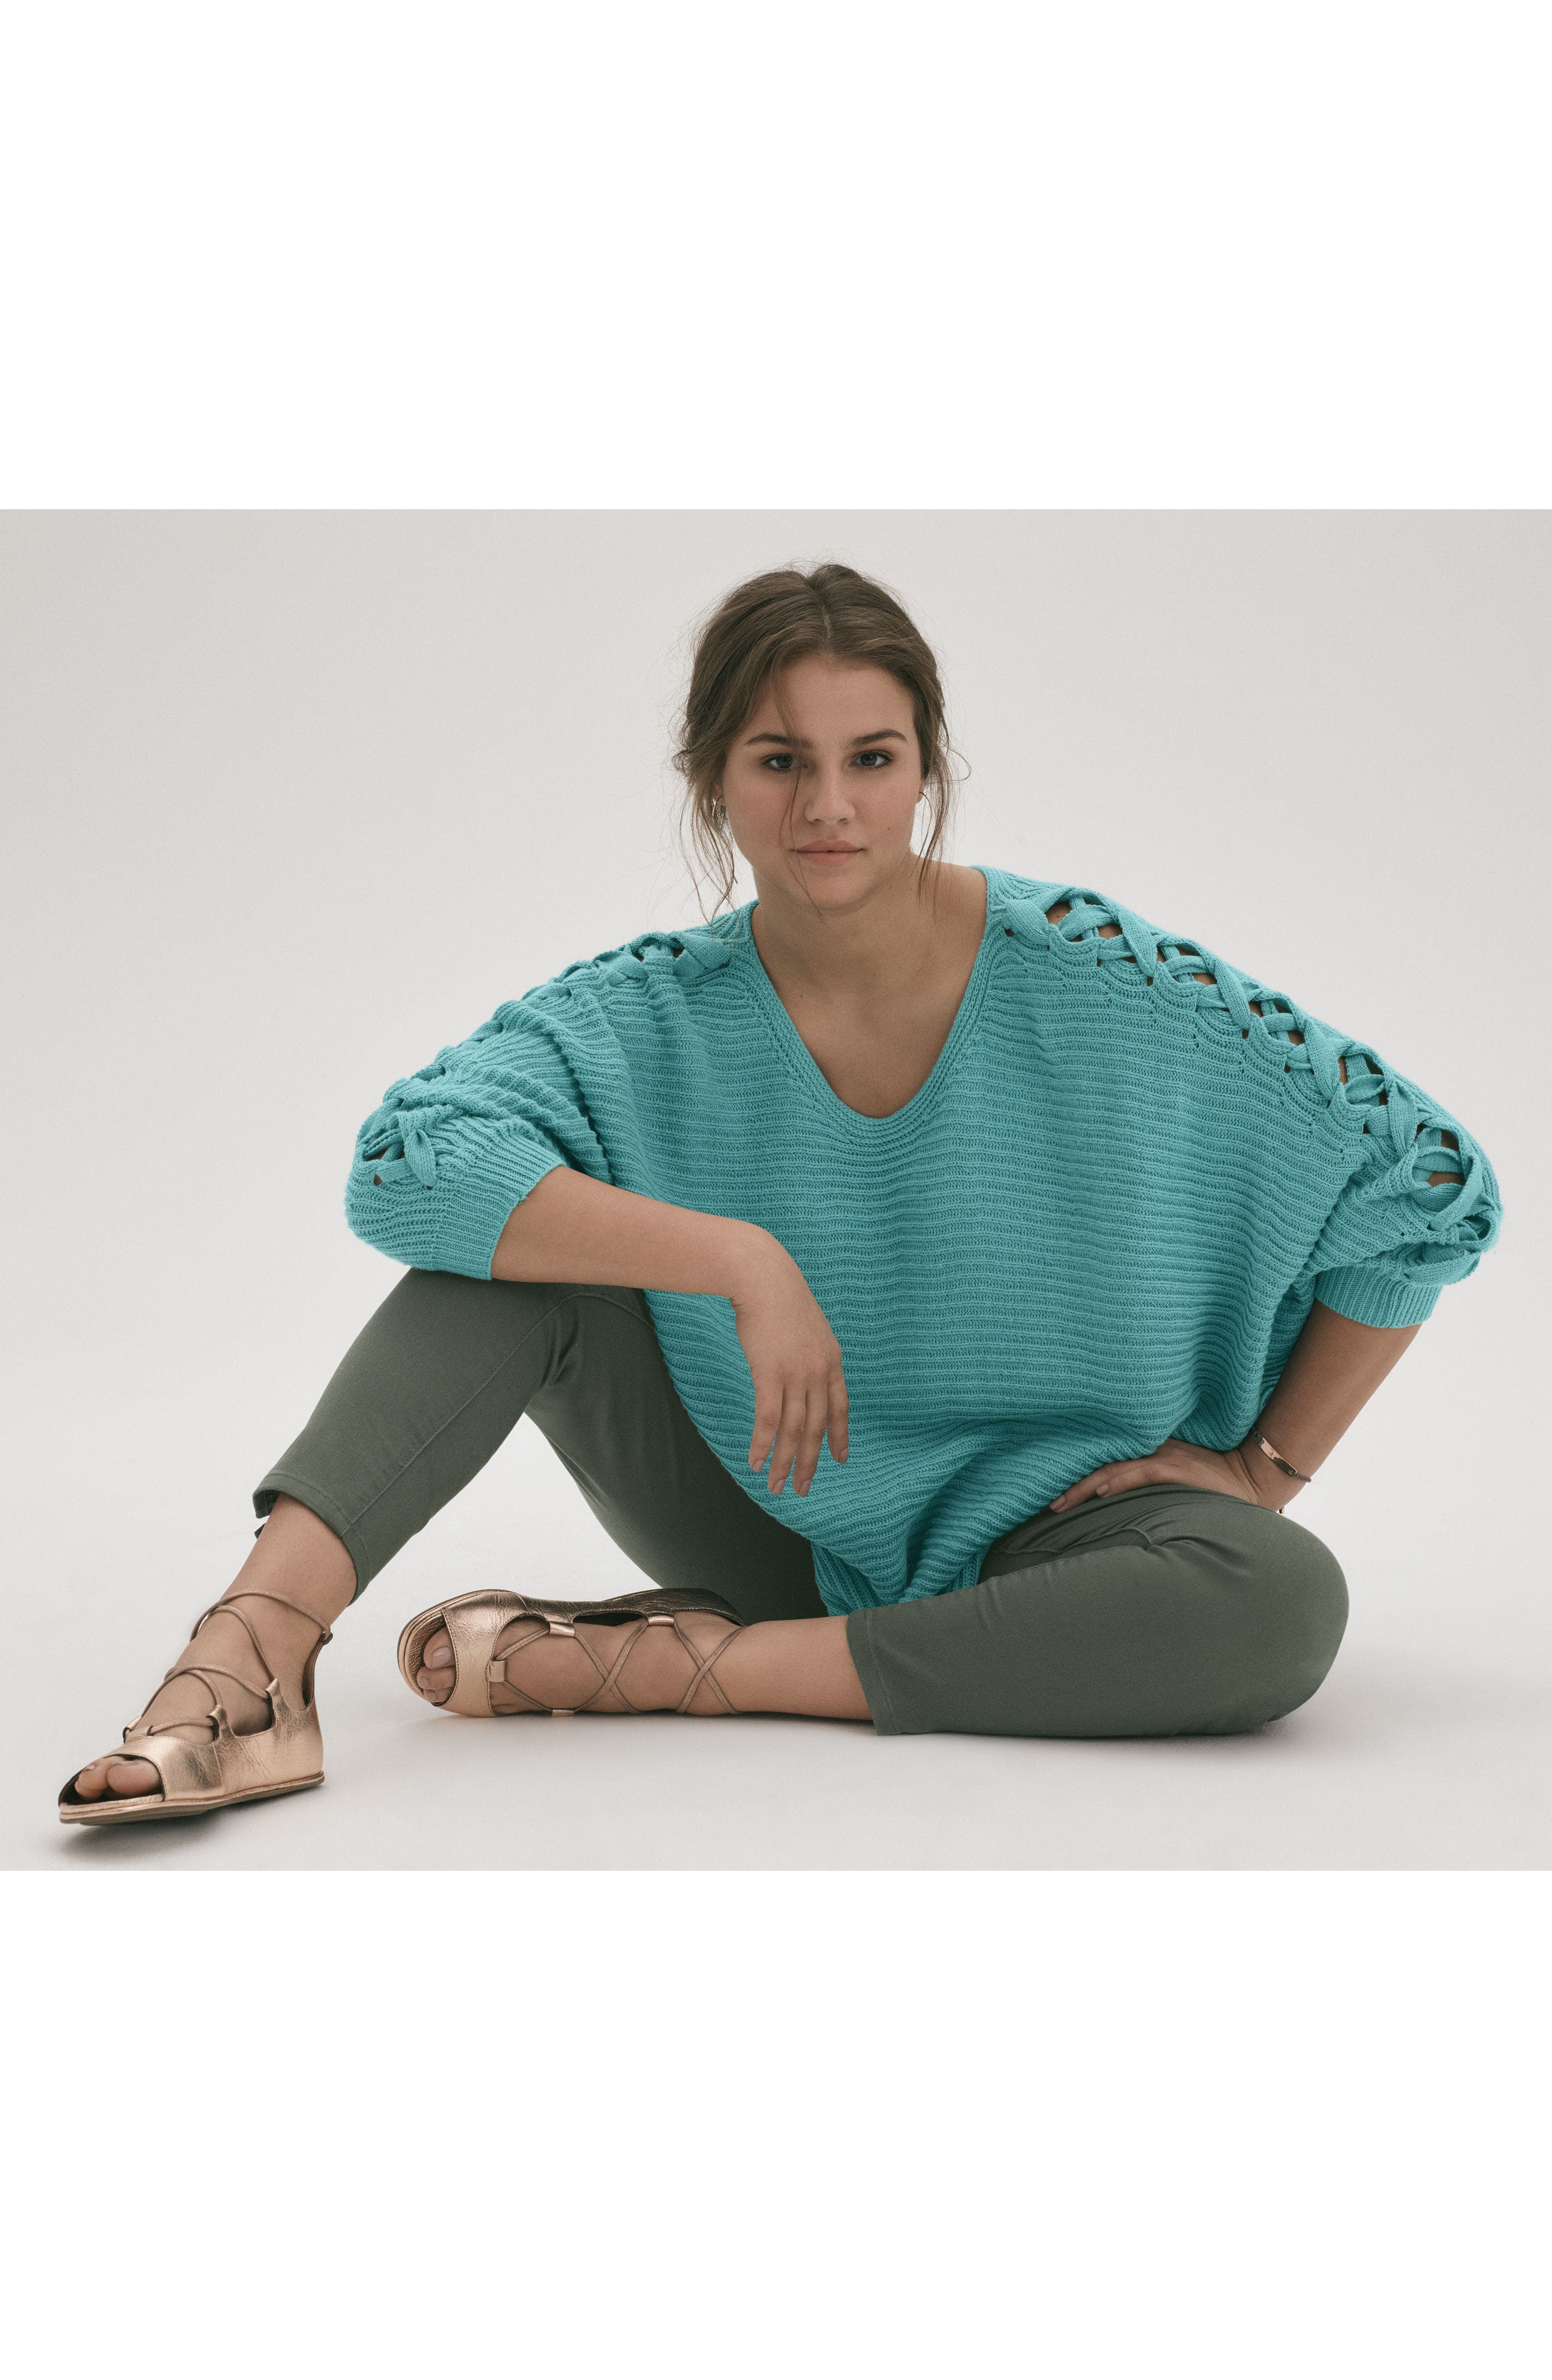 Lace-Up Sleeve Sweater,                             Alternate thumbnail 7, color,                             310